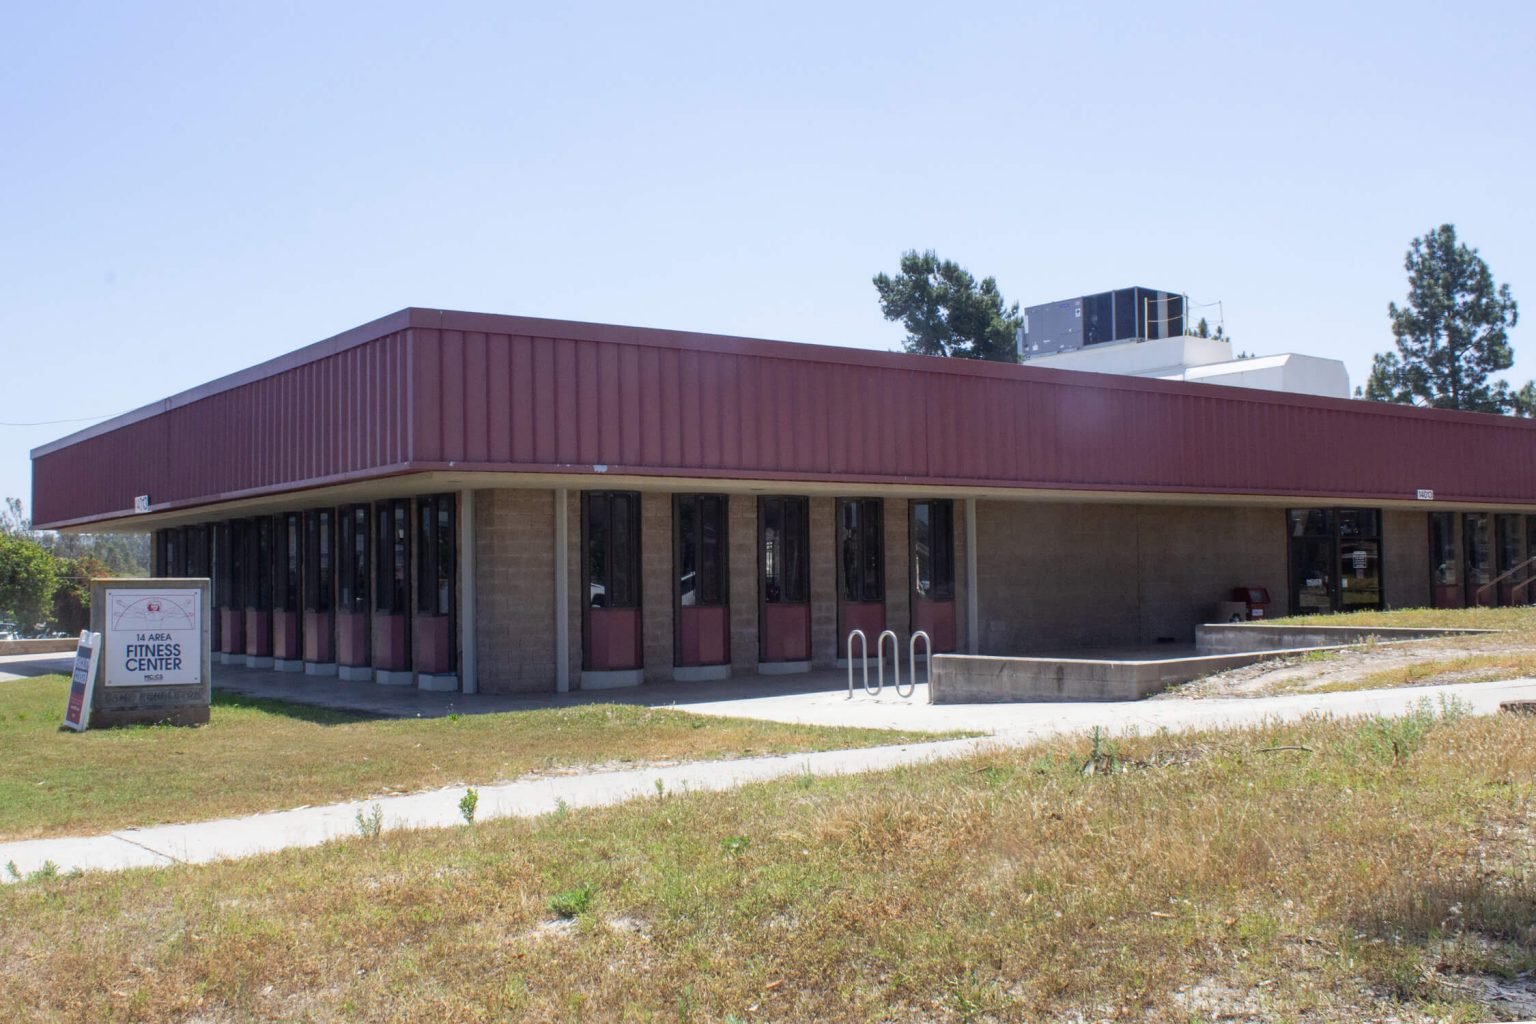 14 Area Fitness Center Building